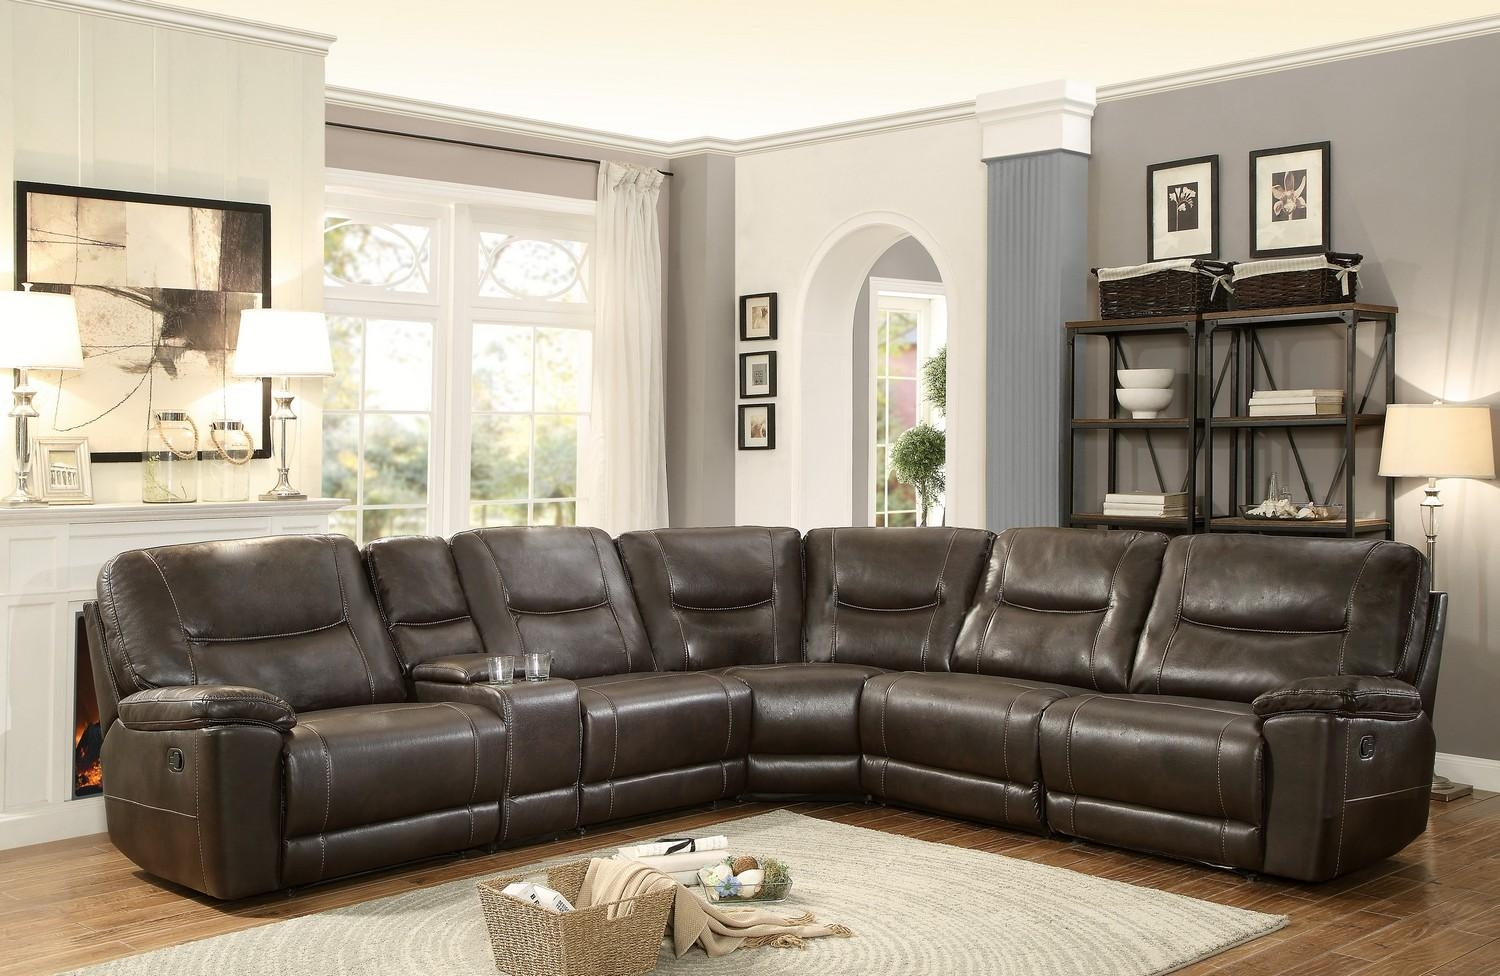 Homelegance Columbus Reclining Sectional Sofa Set D – Breathable Pertaining To Leather And Chenille Sectional (Image 10 of 20)